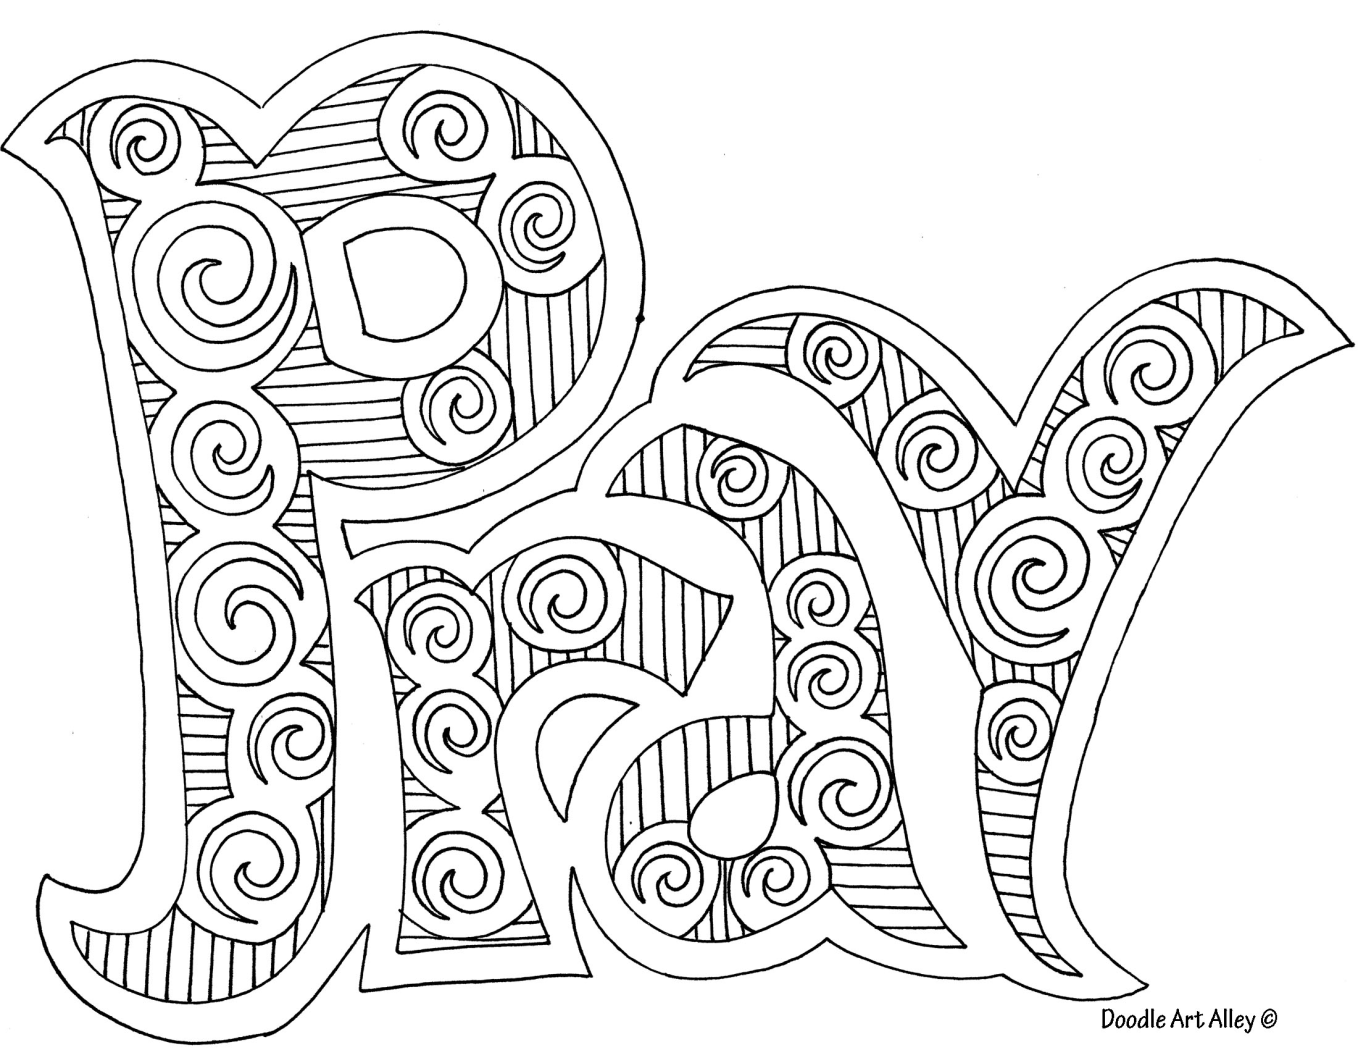 Free coloring pages christian - Pray Adult Religious Coloring Page I Want To Do This For My Prayer Journal